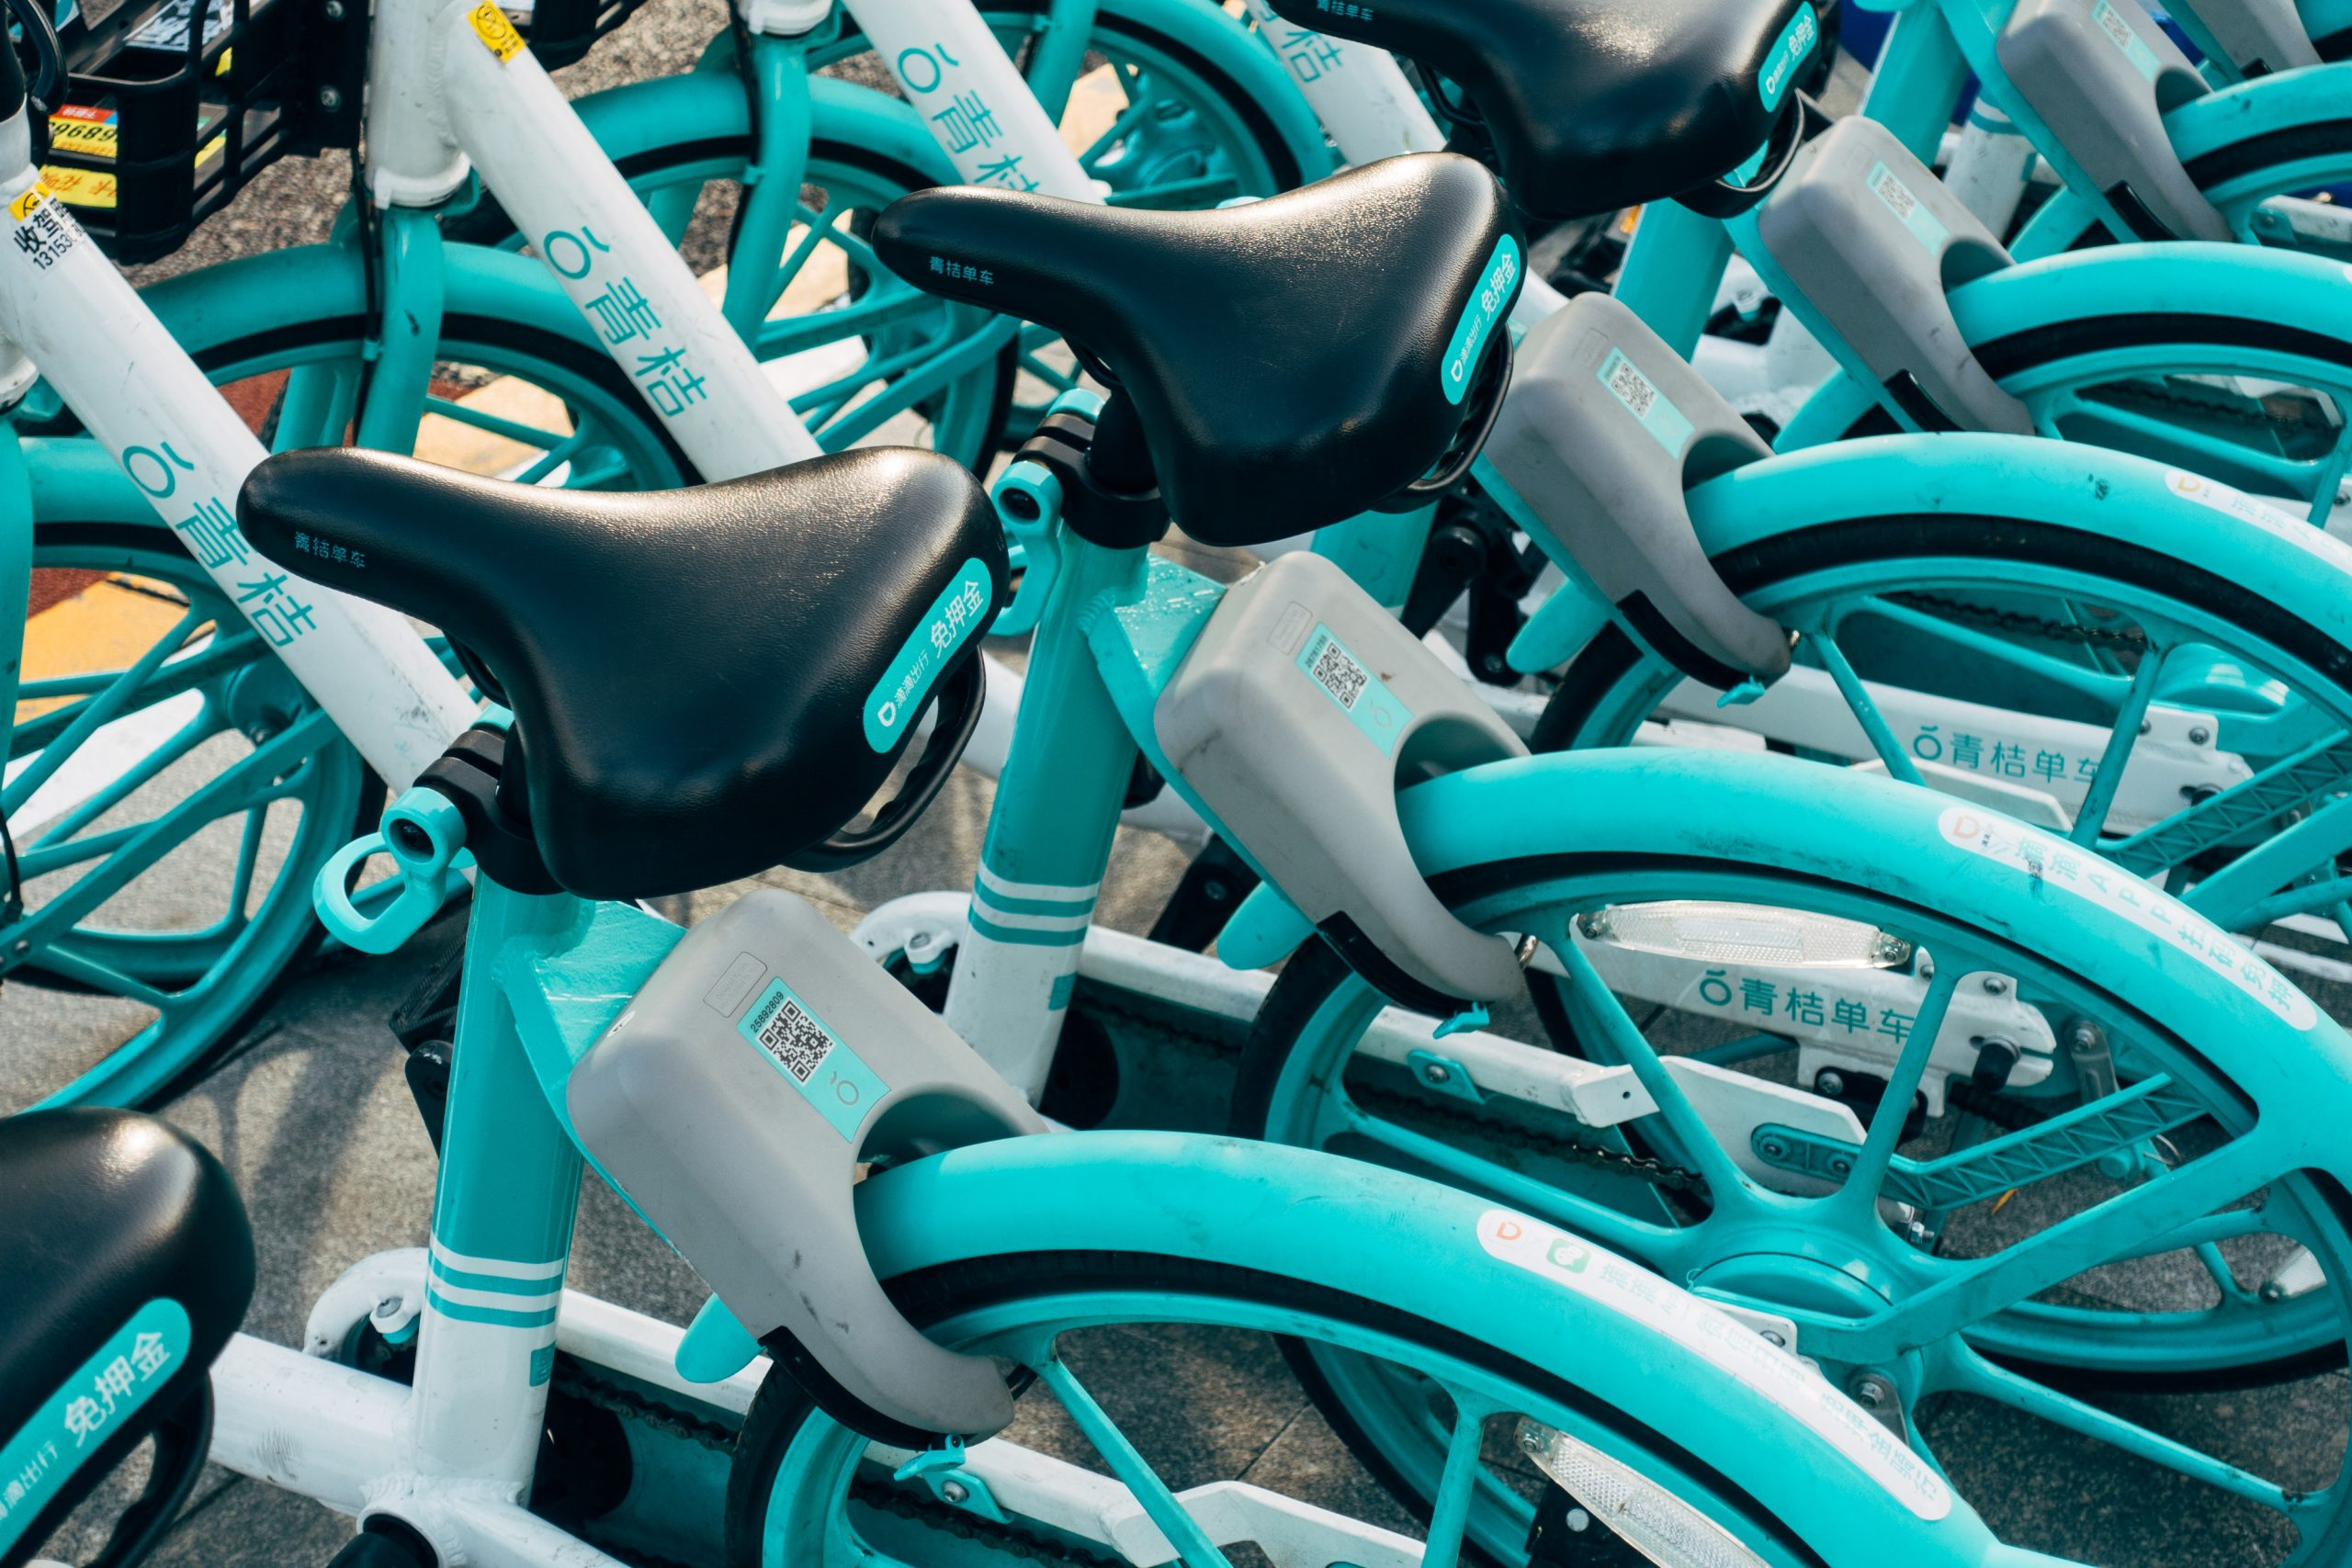 teal-bicycles-on-a-parking-lot-3671179